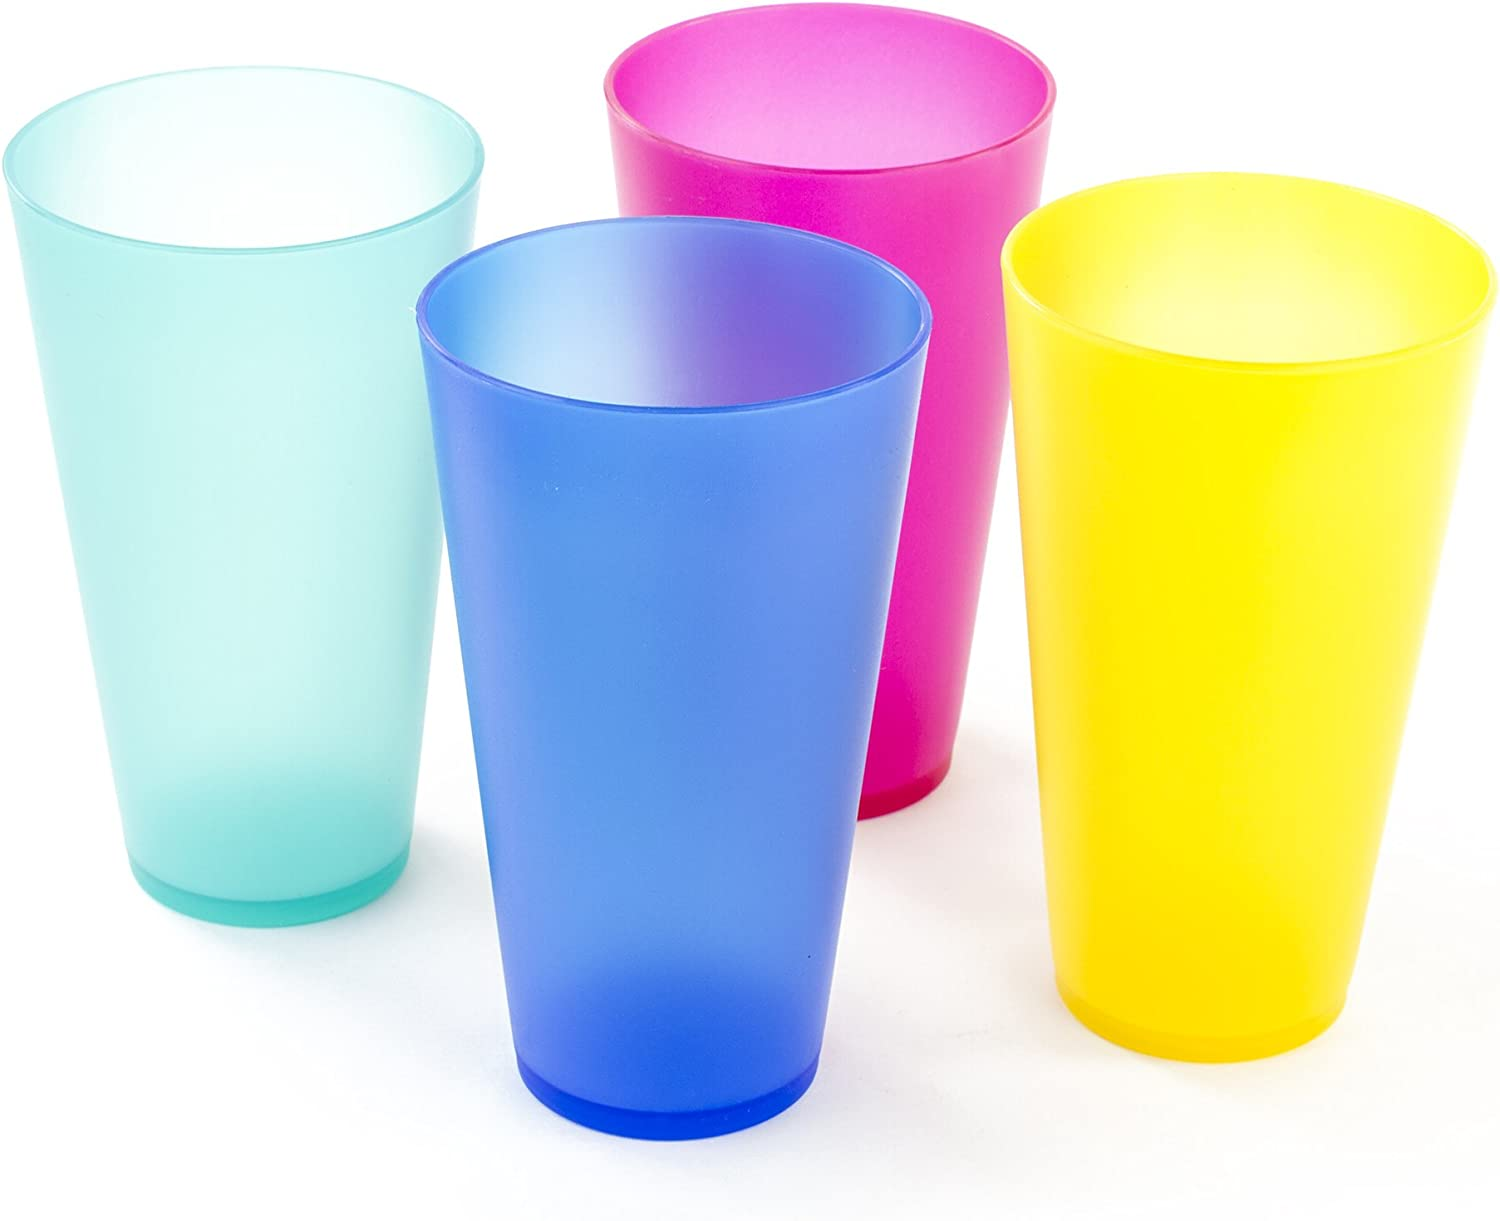 Imperial Home Reusable Plastic Cups, Set of 4, Multicolored